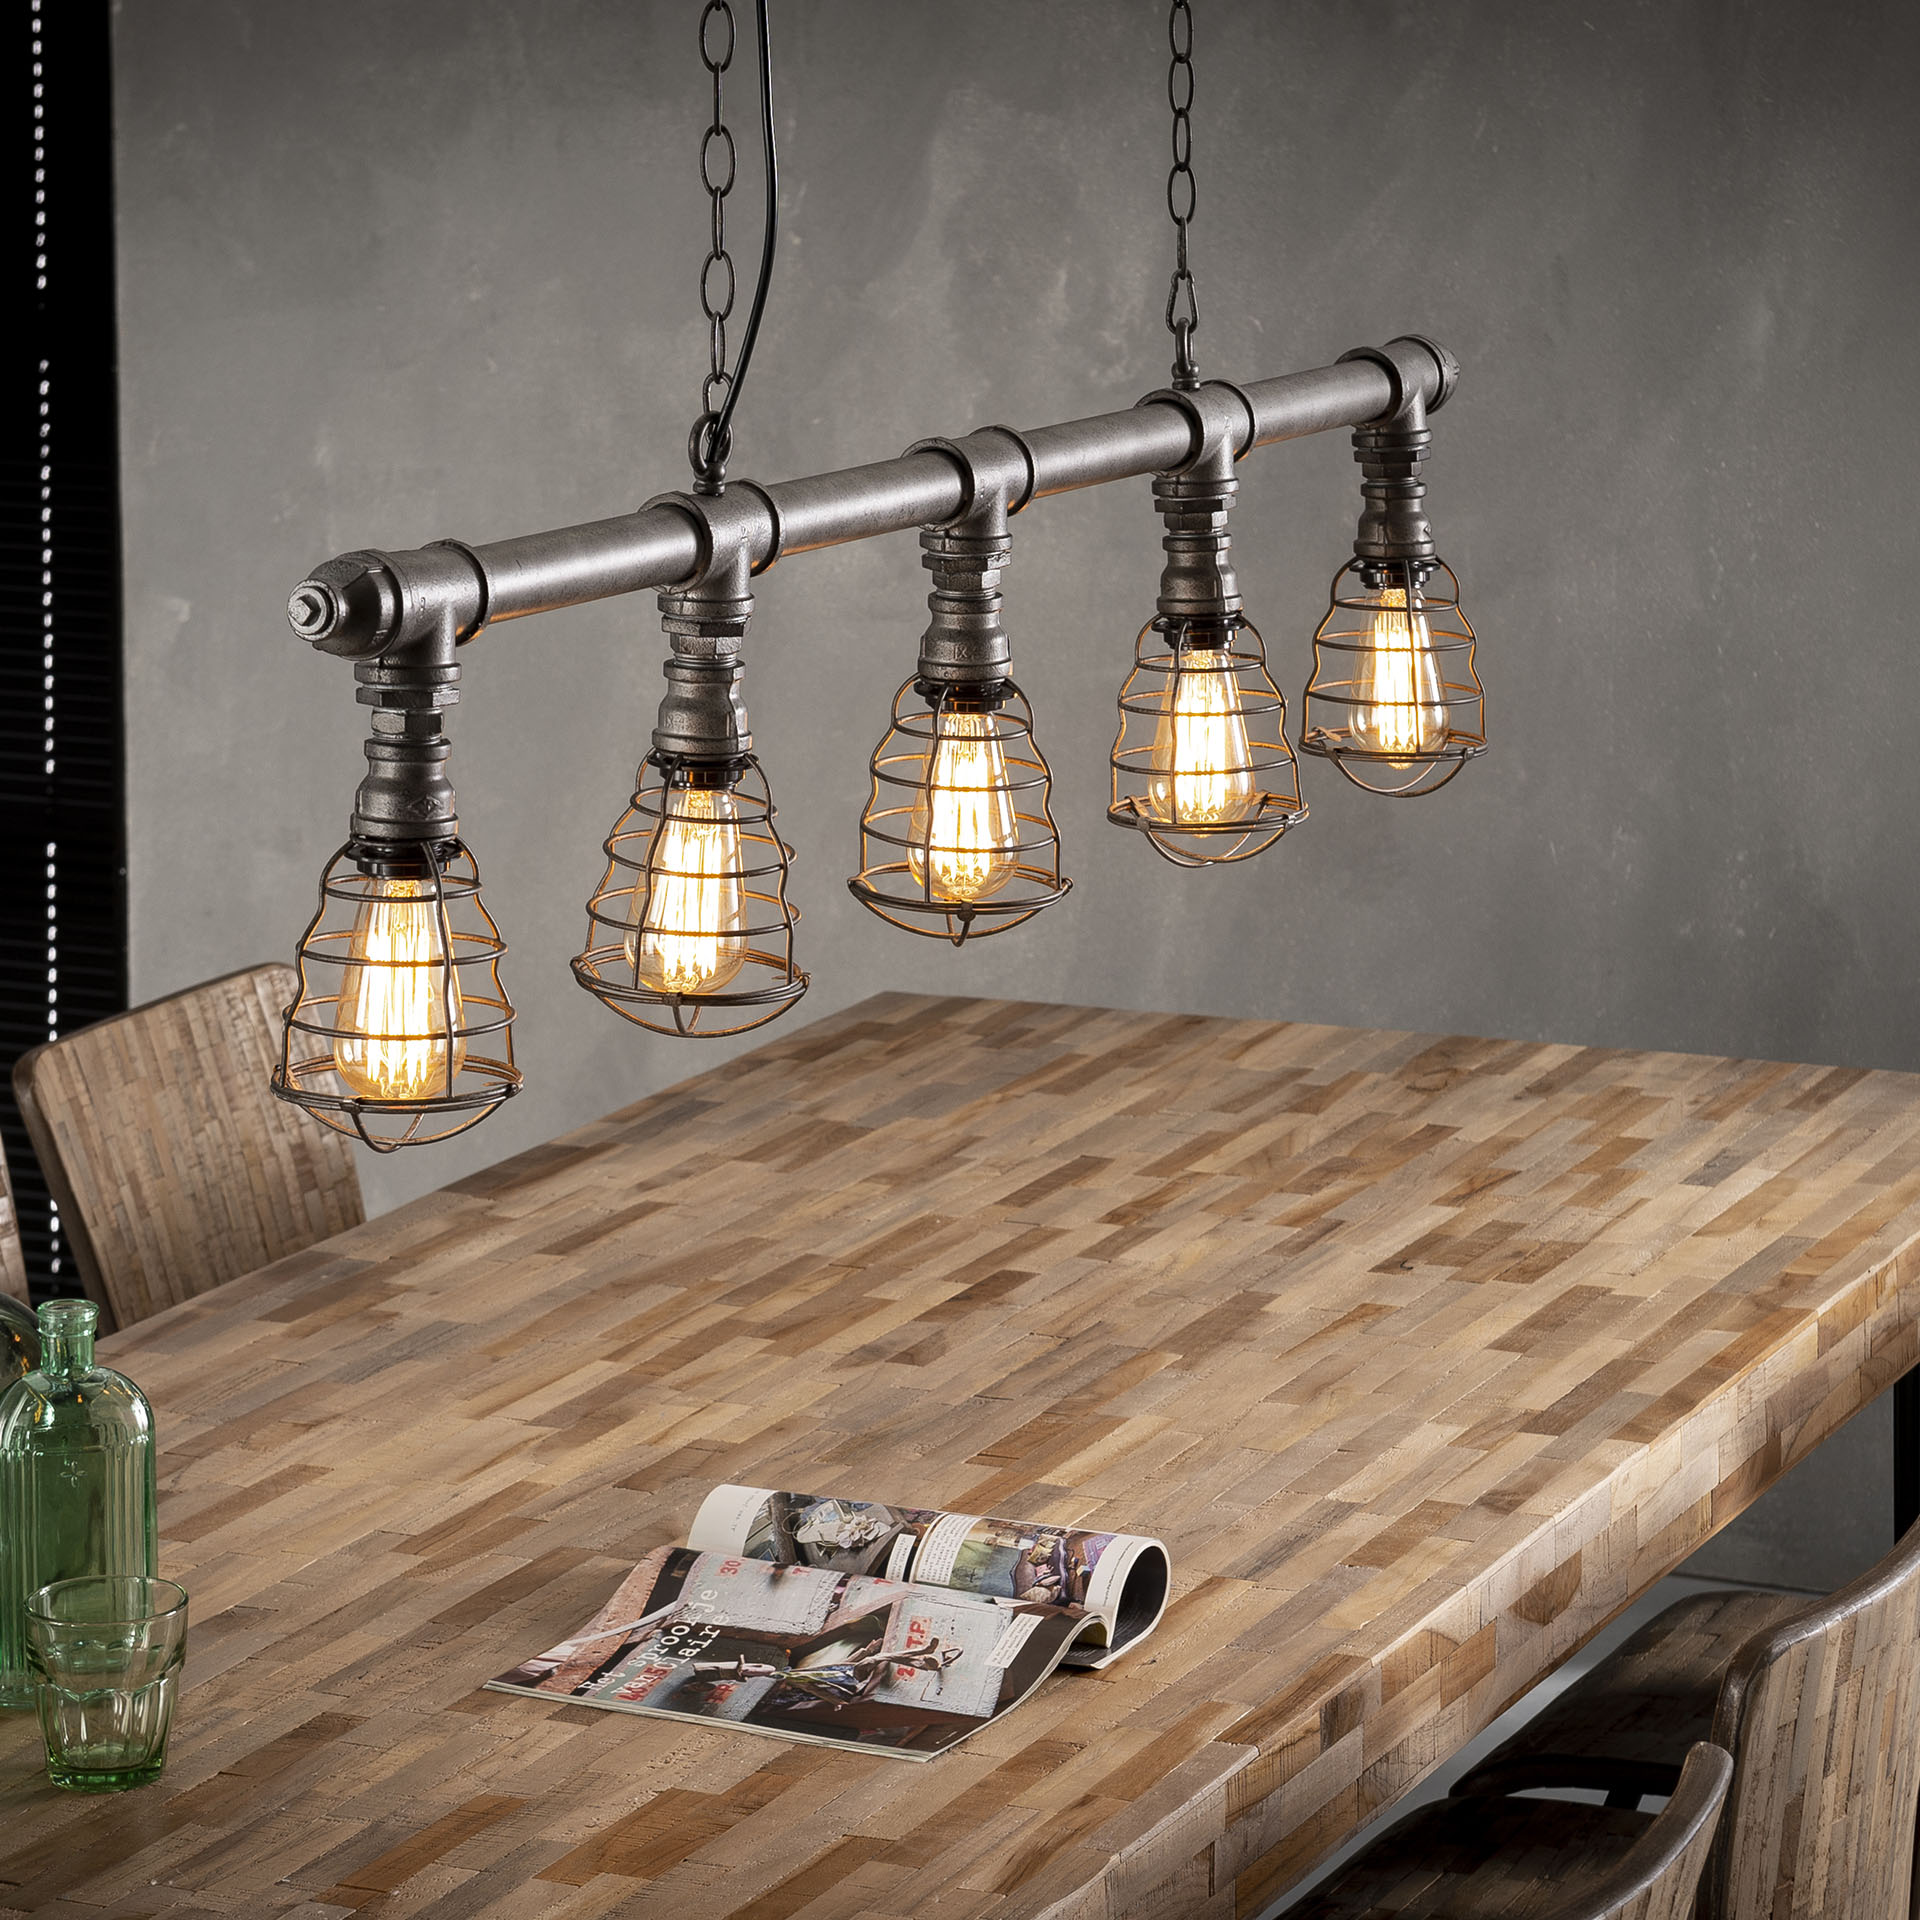 Hanglamp 5x12 industrial tube wire - Oud zilver